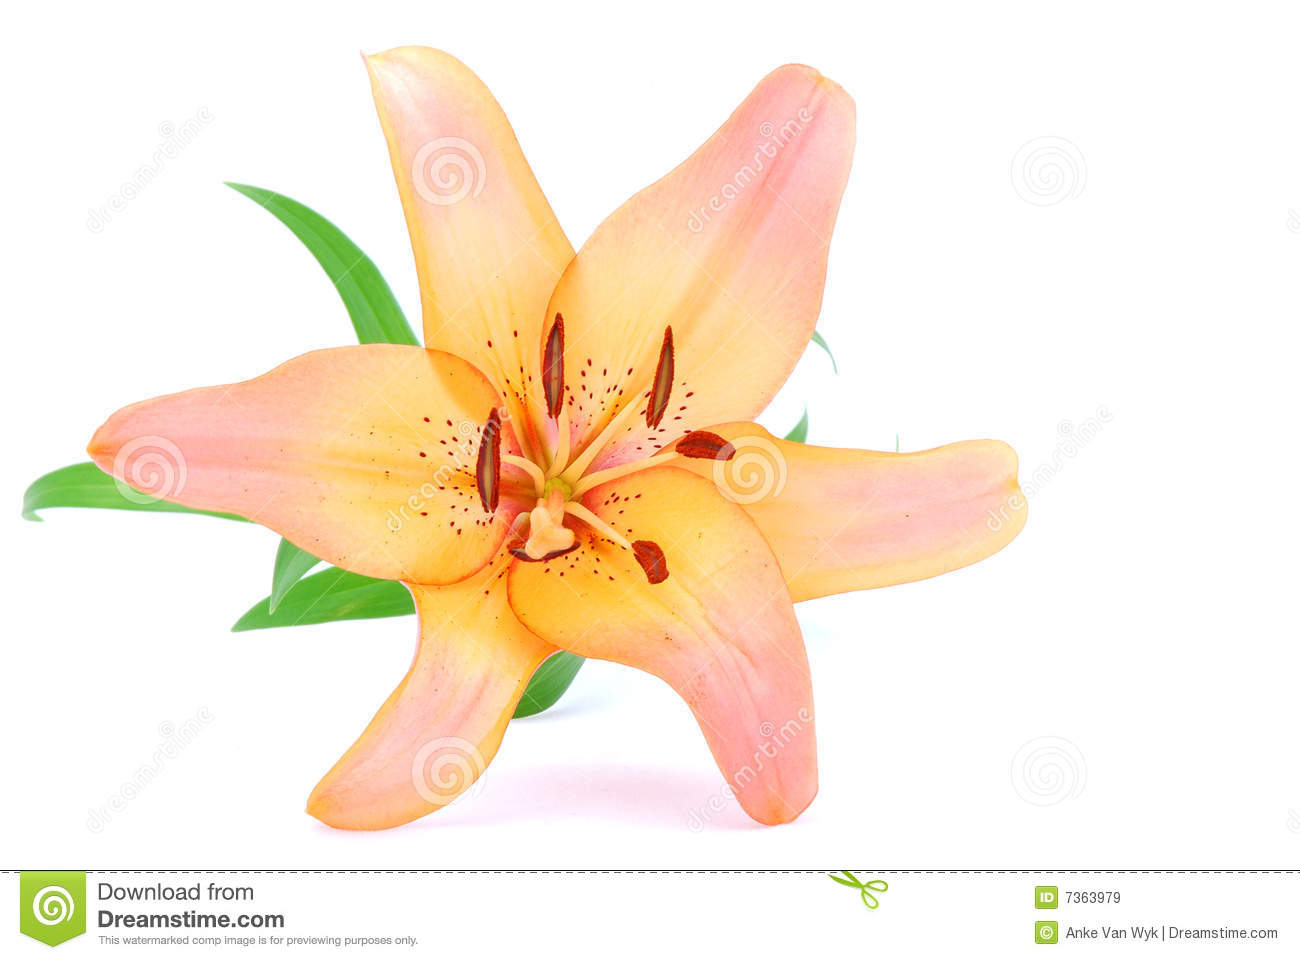 Apricot Lily Flower Stock Photos, Images, & Pictures.